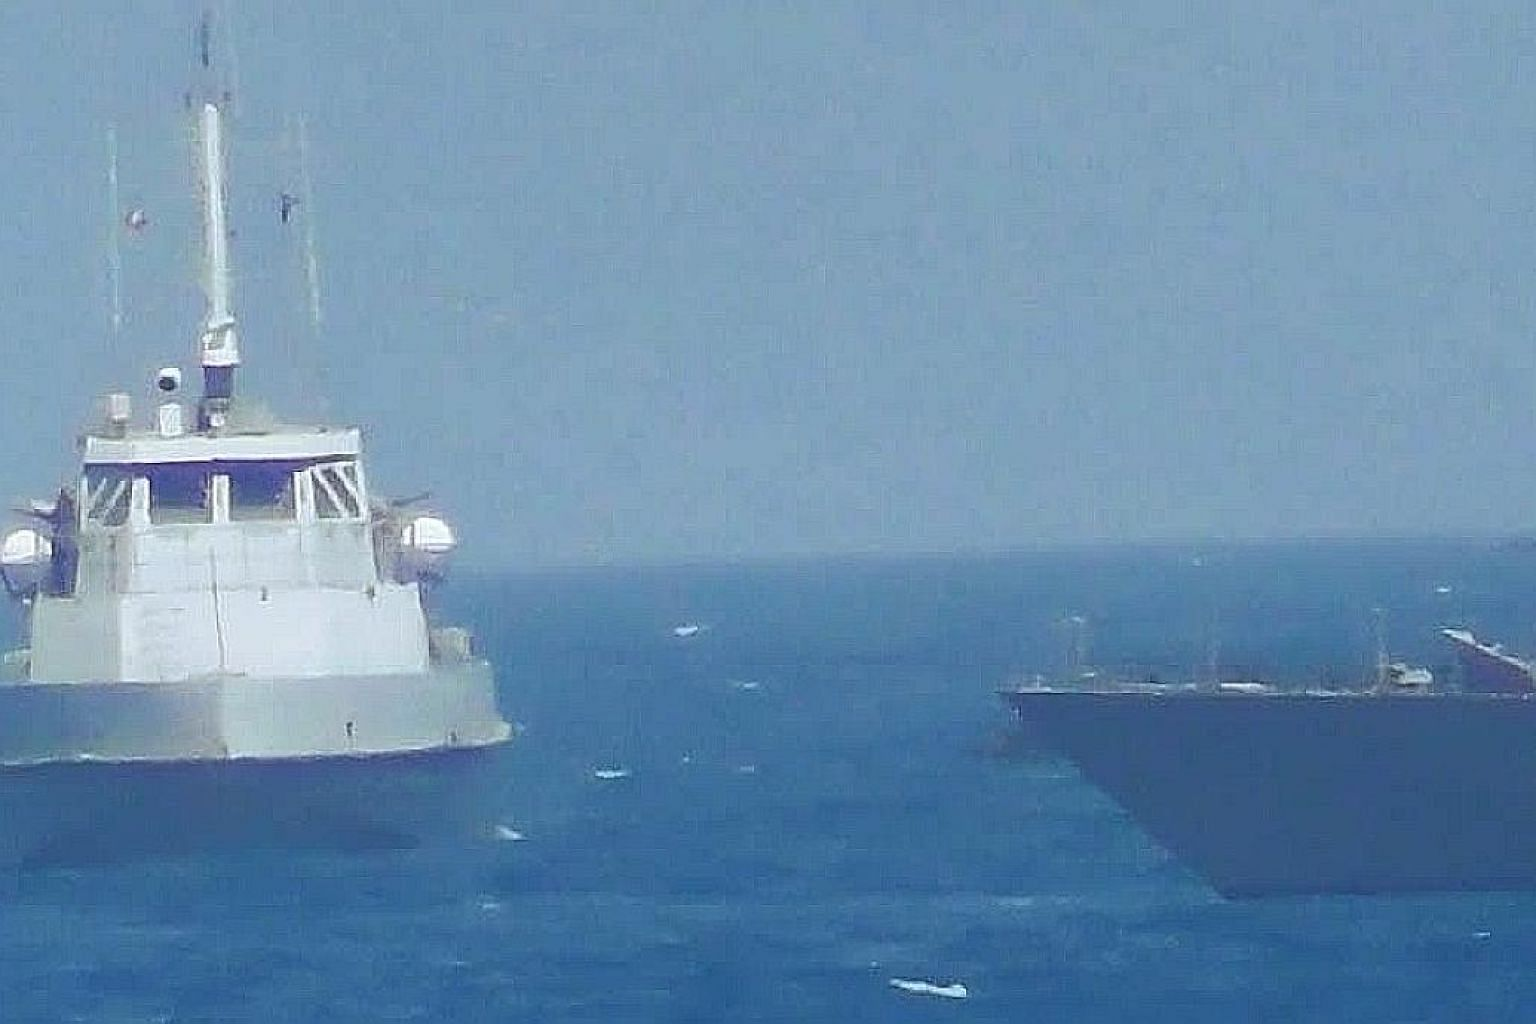 An Iranian naval vessel (left) approaching the coastal patrol ship USS Thunderbolt in the Persian Gulf last Tuesday. According to the US Department of Defence, the USS Thunderbolt fired warning shots near the Iranian ship.